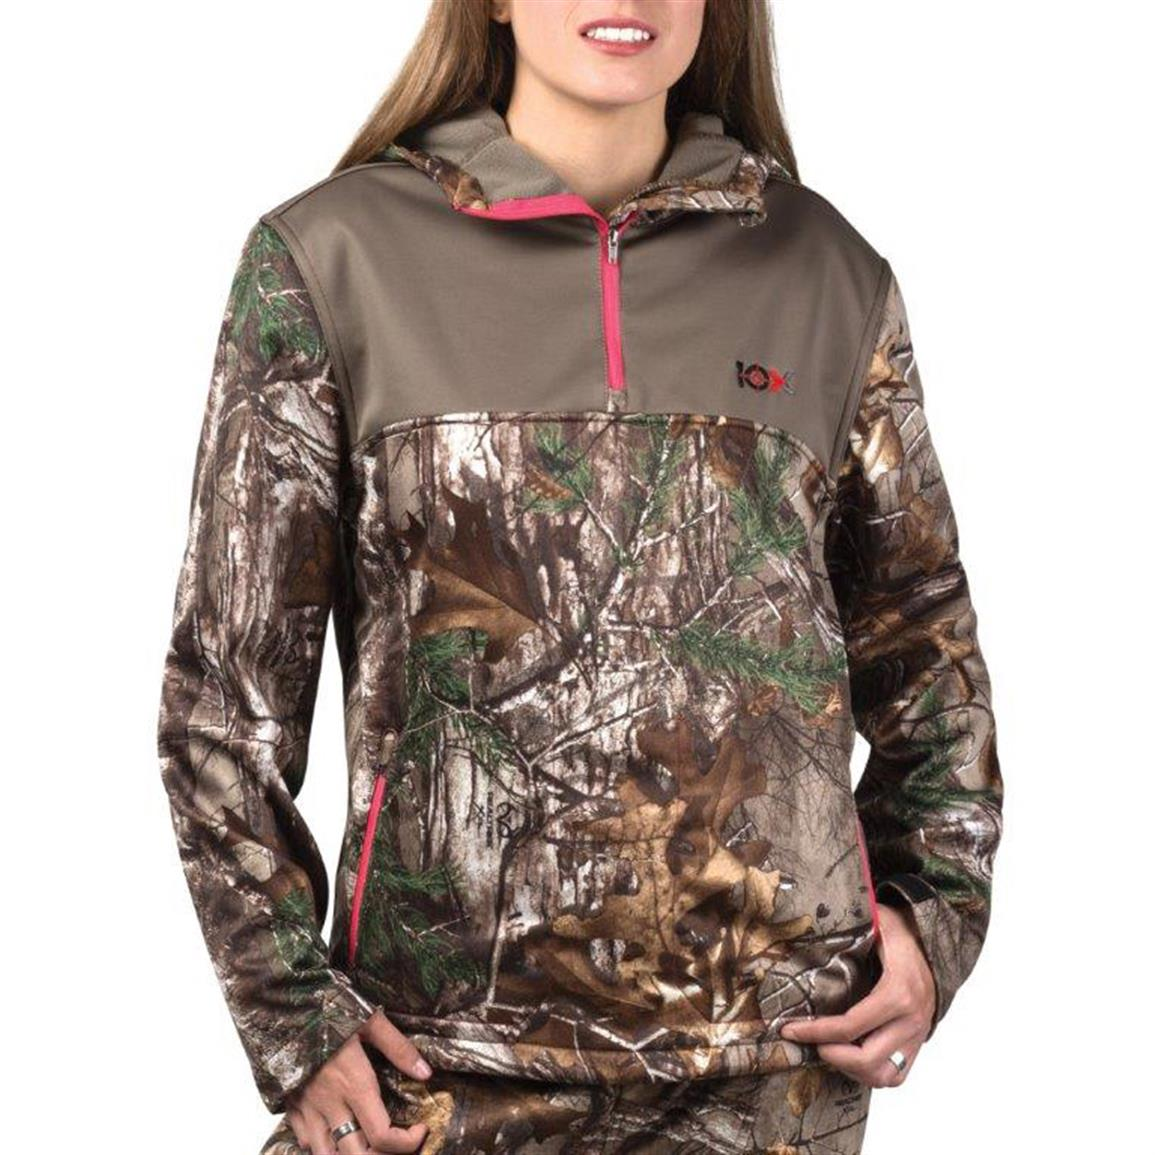 10X Women's Camo Tech Hoodie, Mossy Oak Break-Up Country